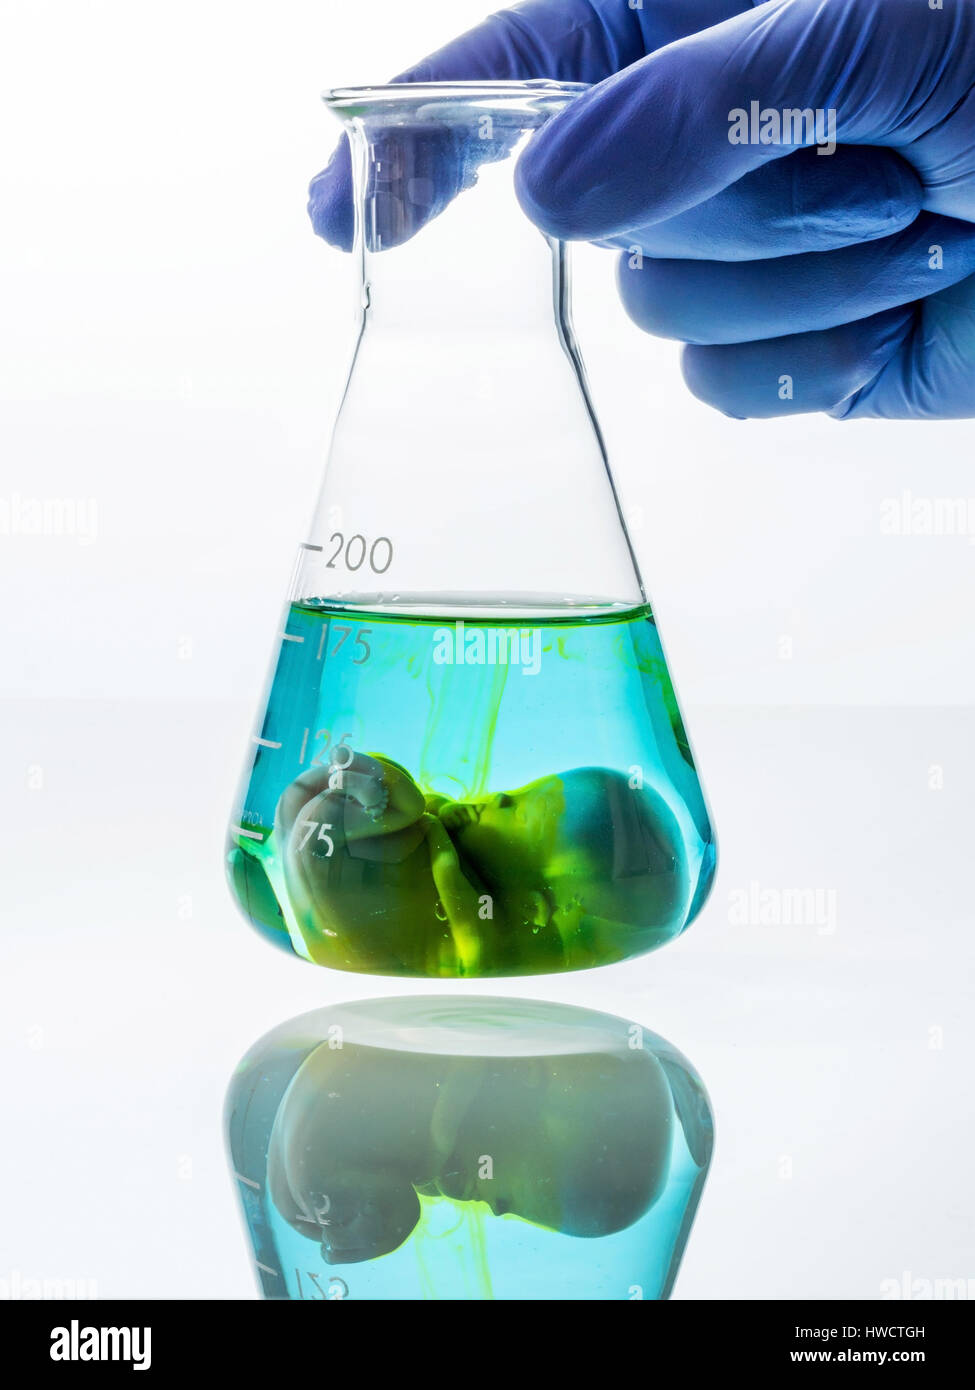 Model of an embryo in a lab glass. Symbolic photo for pregnancy by artificial conception. Abortion and genetic manipulation, - Stock Image